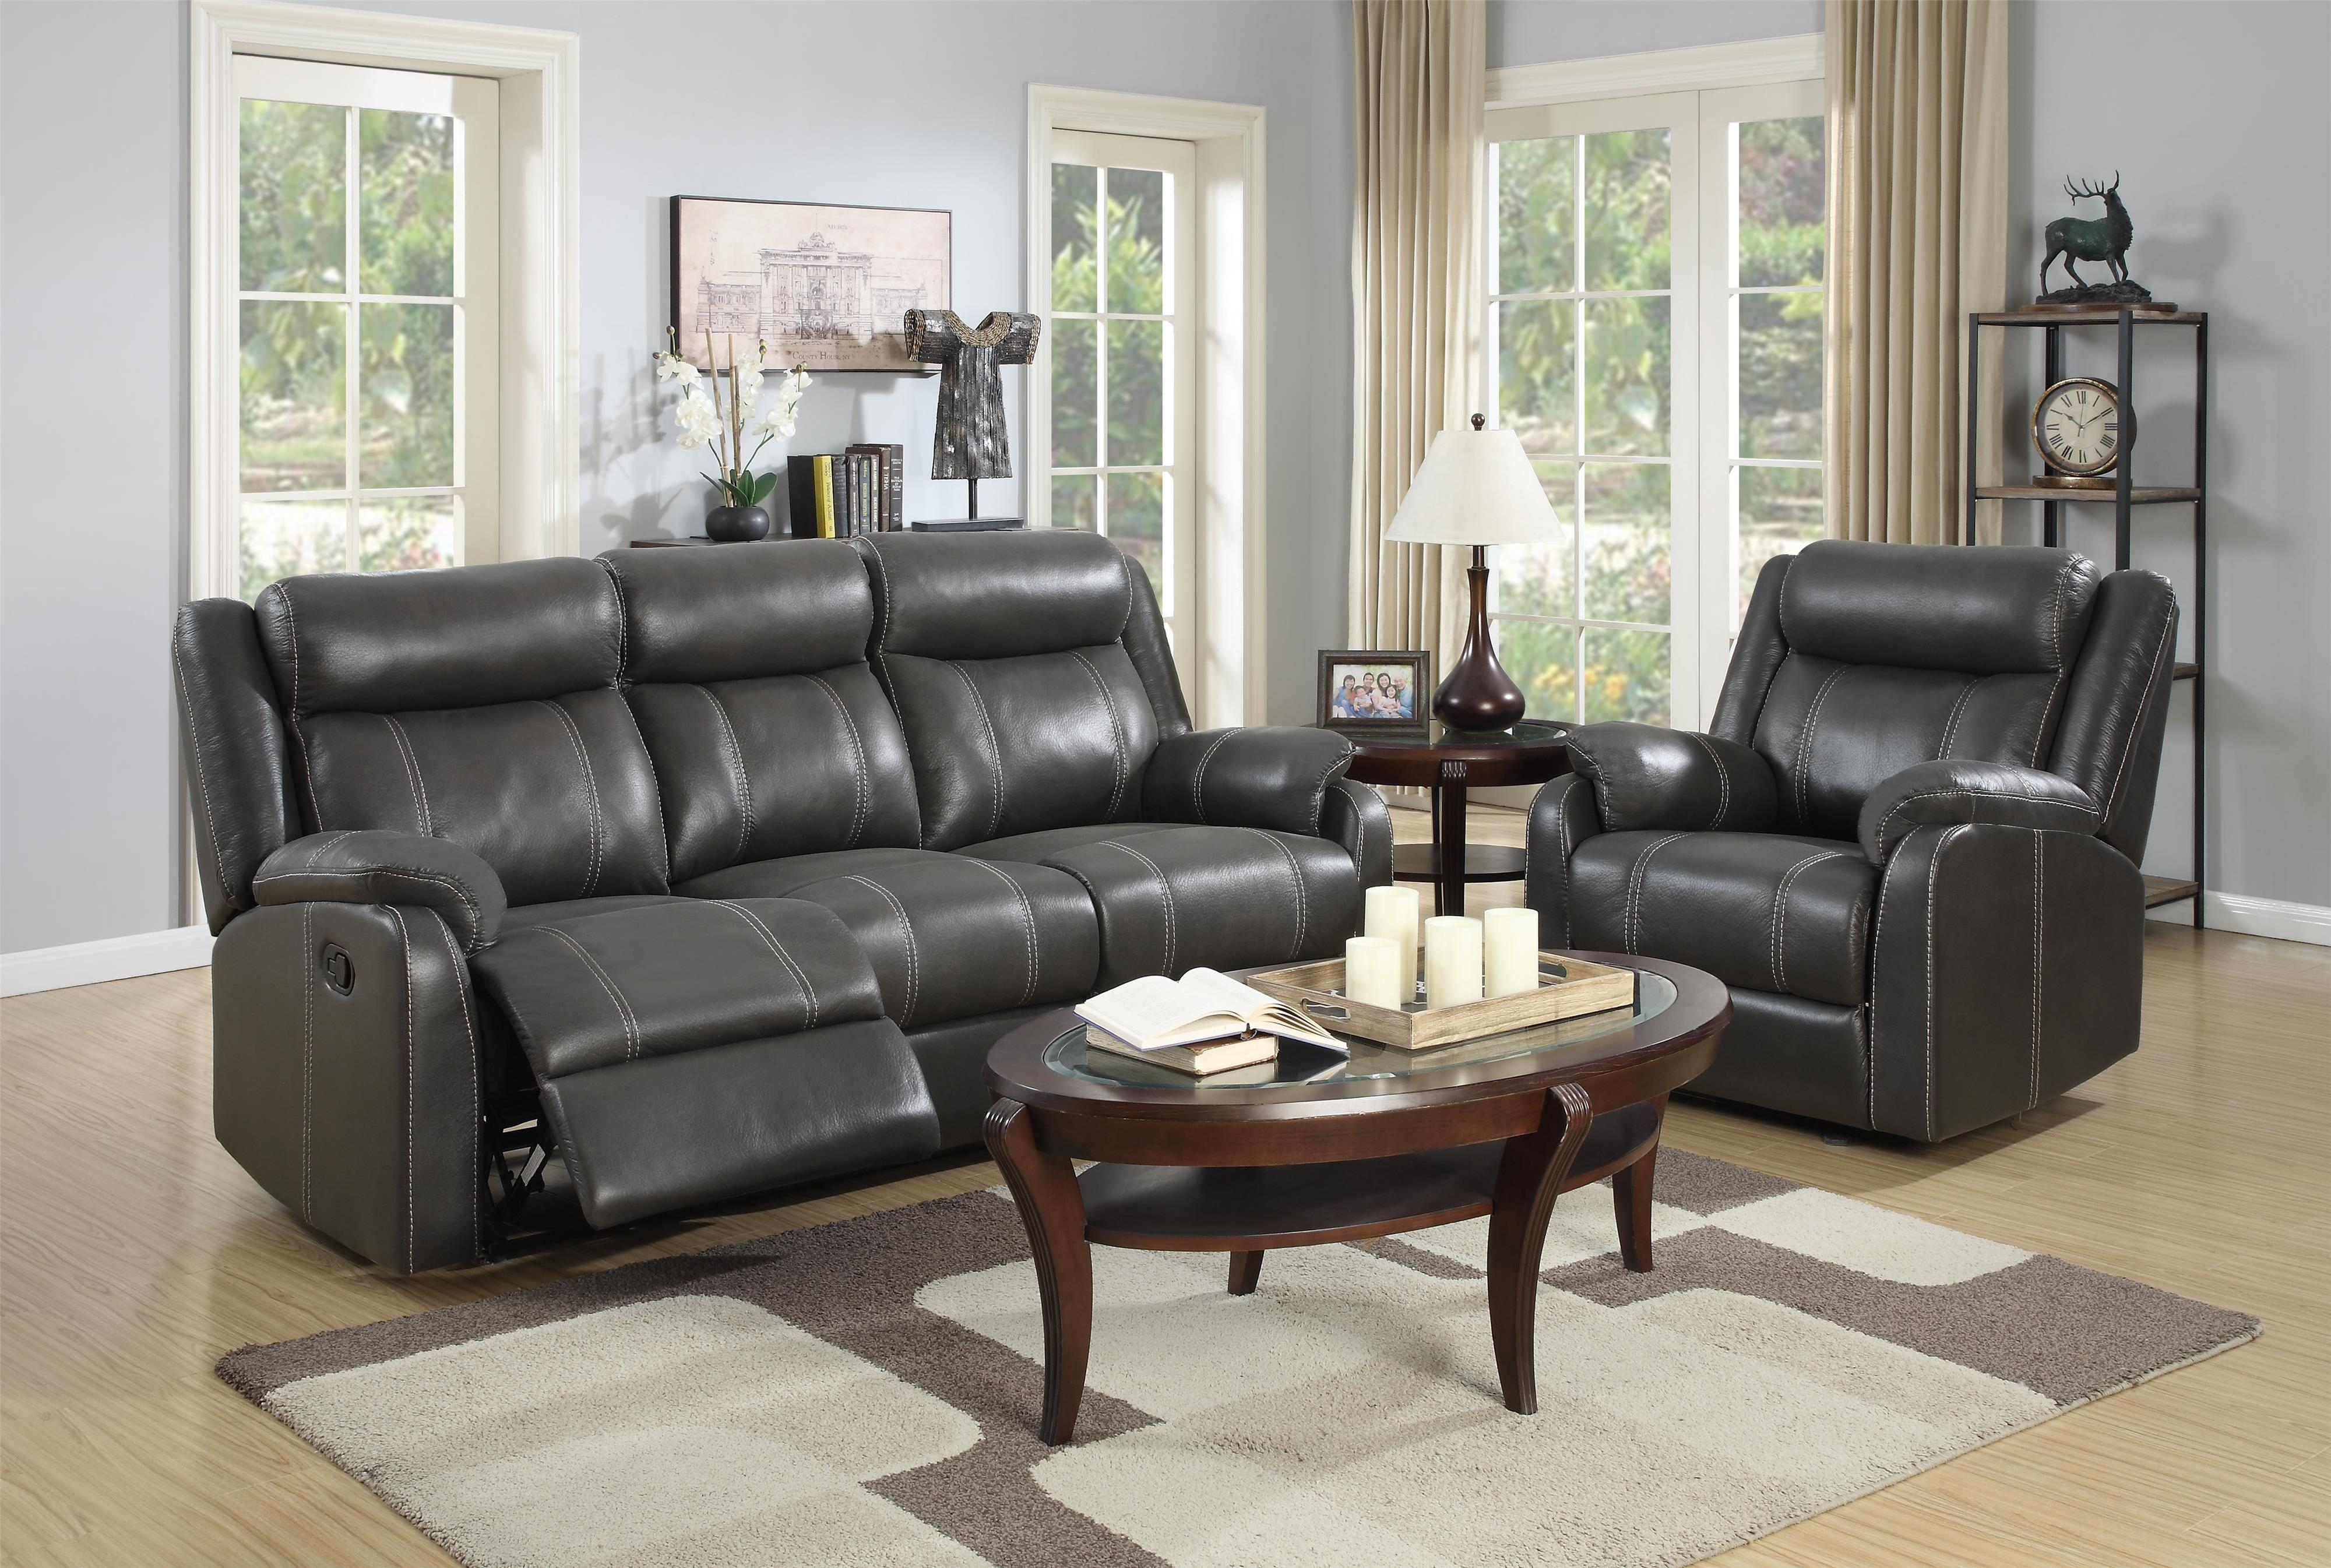 Domino-US Reclining Living Room Group by Klaussner International at Godby Home Furnishings